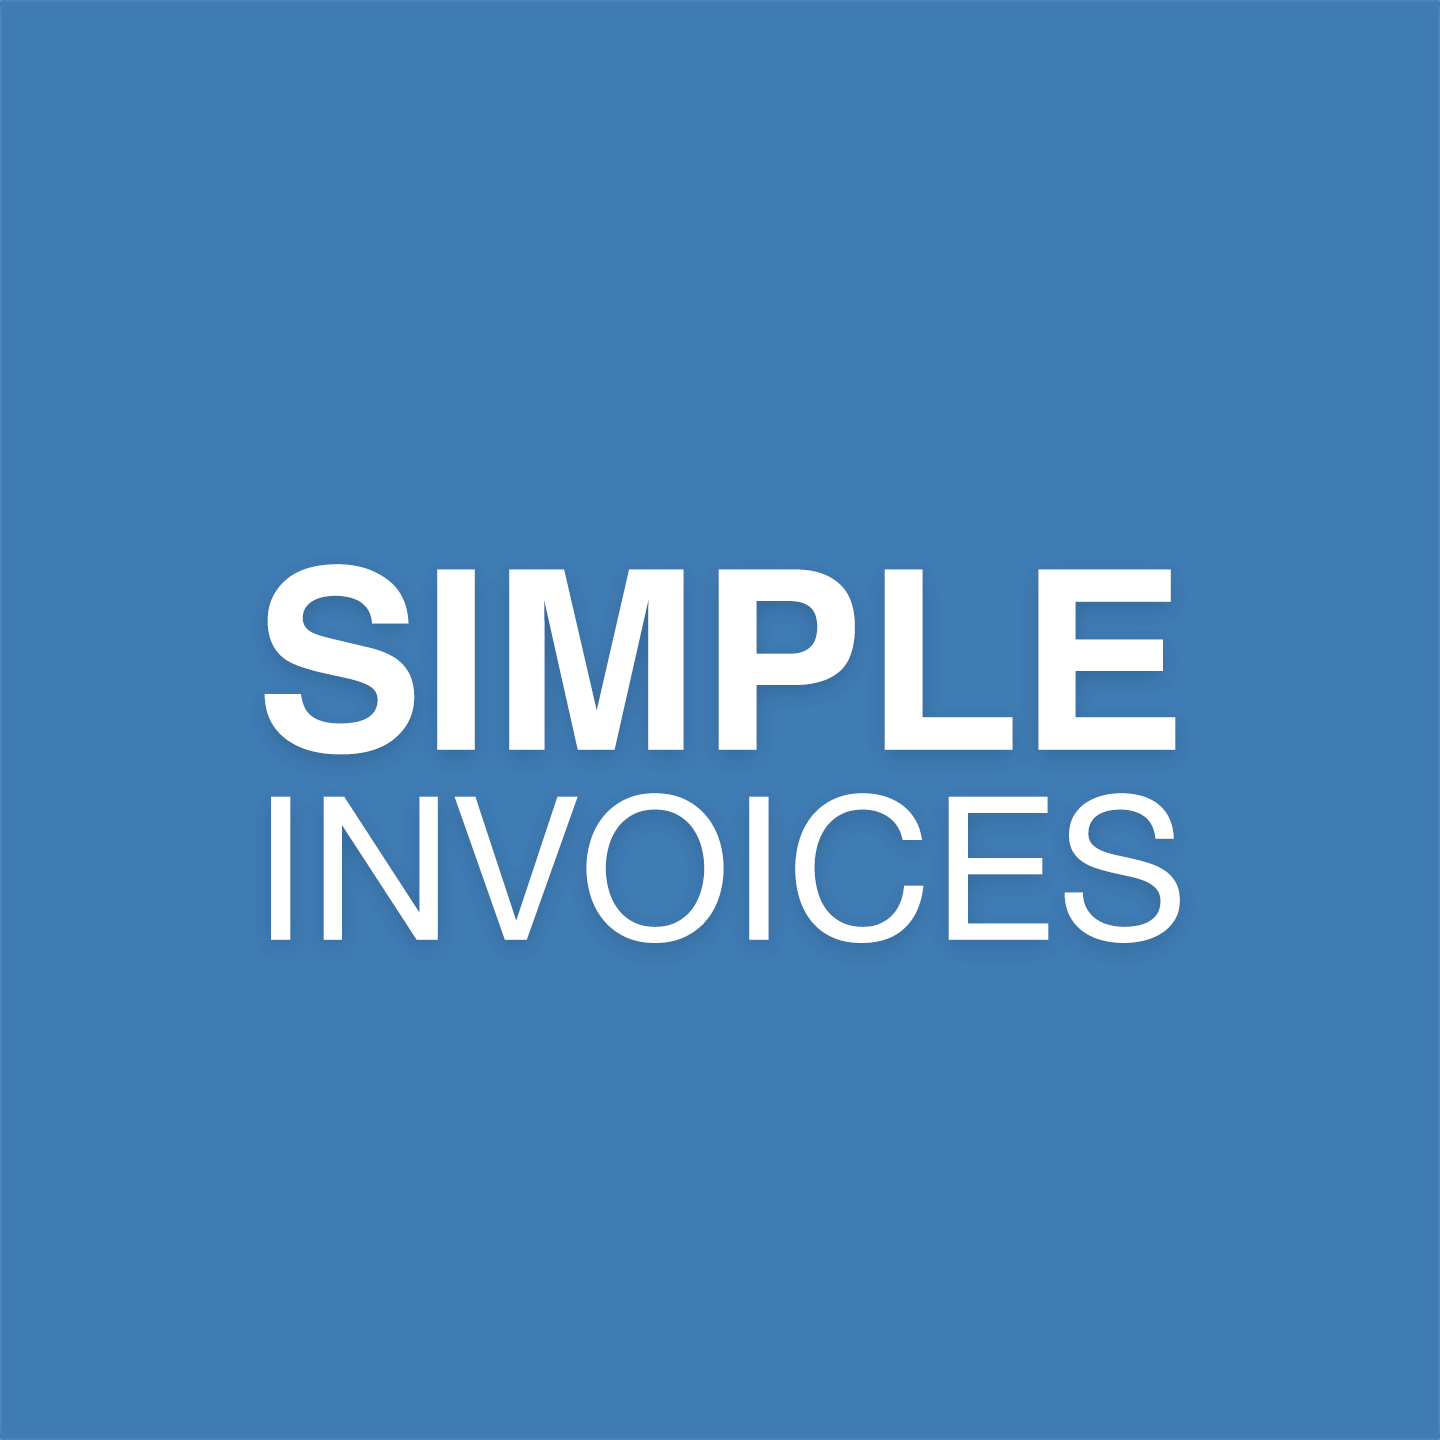 Simple Invoices logo